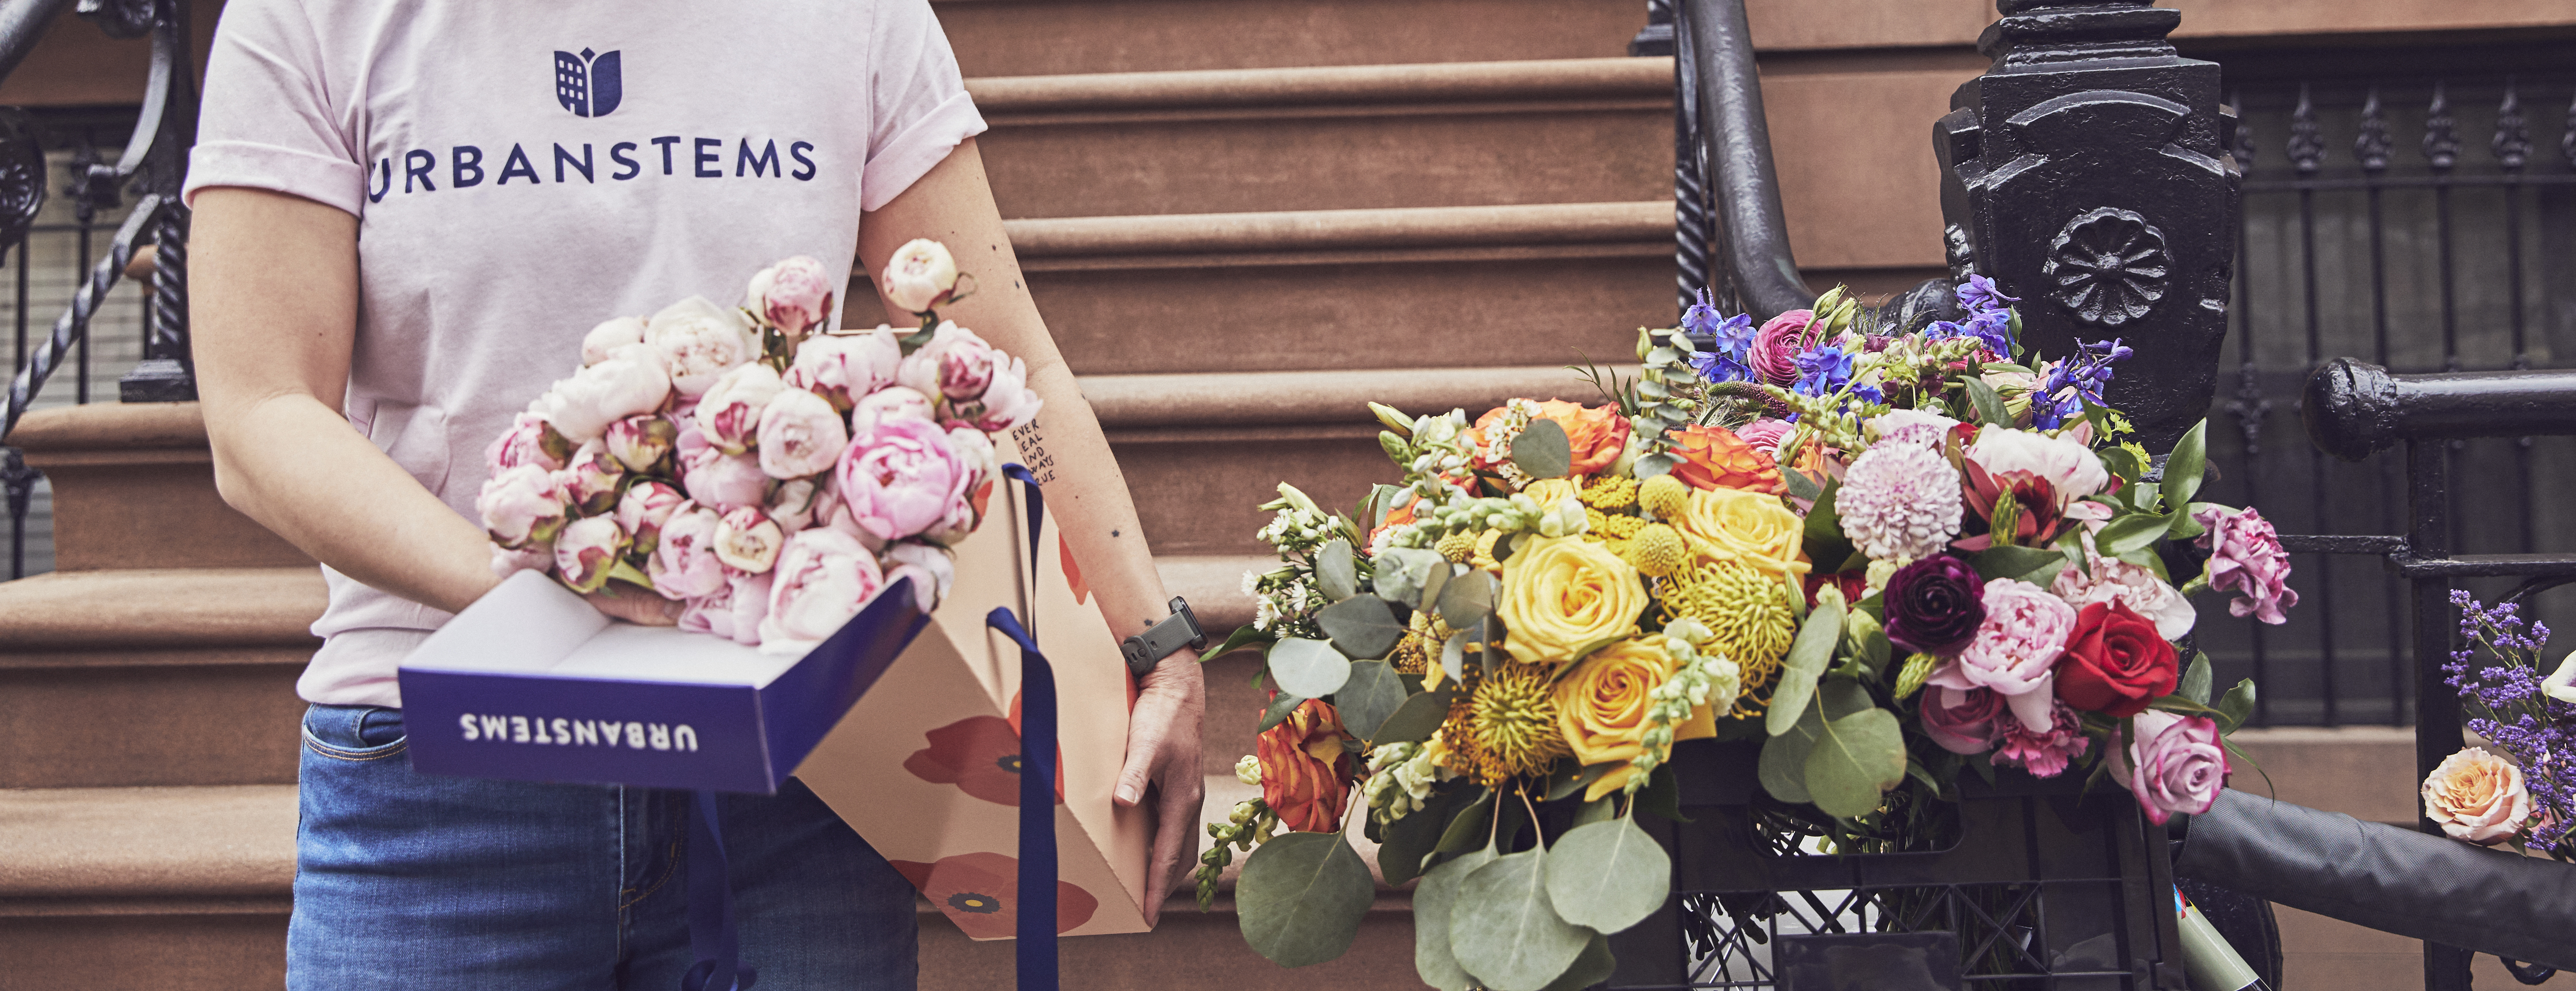 Boxes of flowers being delivered right to the doorstep via UrbanStems same-day delivery